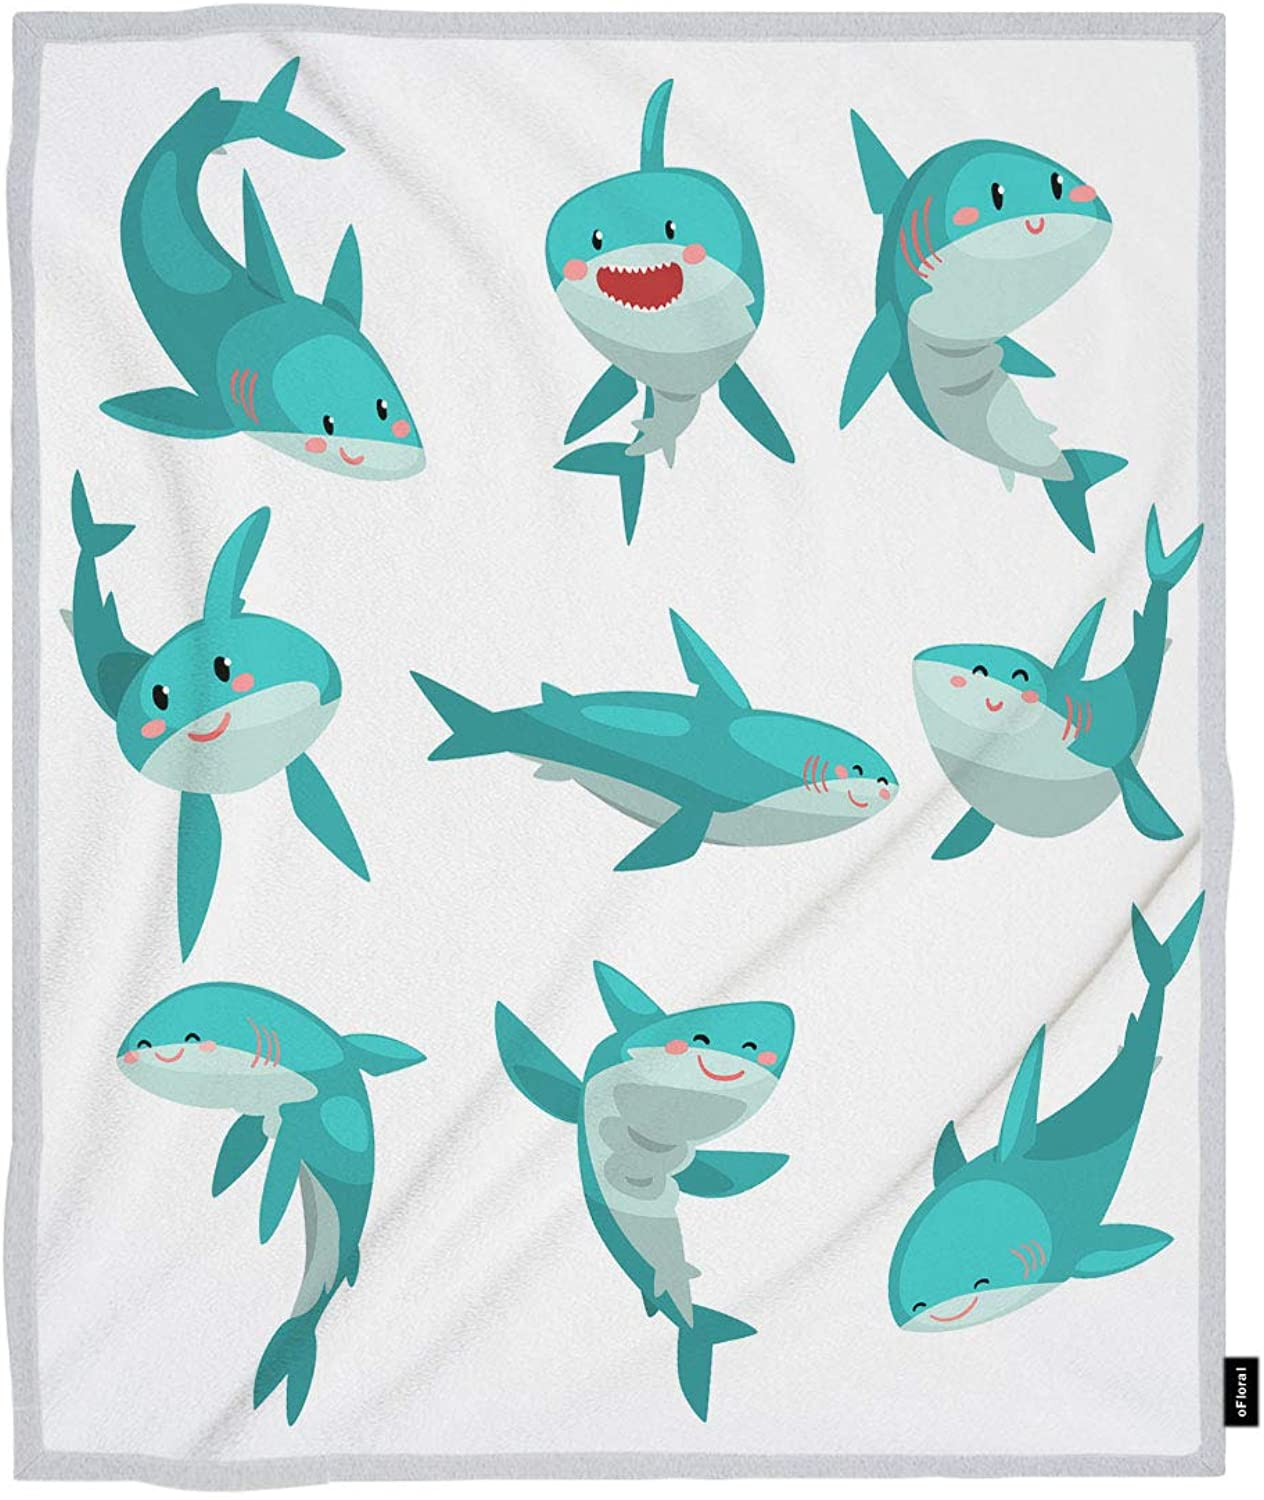 OFloral Shark Throw Blanket Cute Friendly Sharks Sea Animal Marine Life Decorative Soft Warm Cozy Blankets Home Decor for Bed Chair Sofa Couch 50x60 Inch